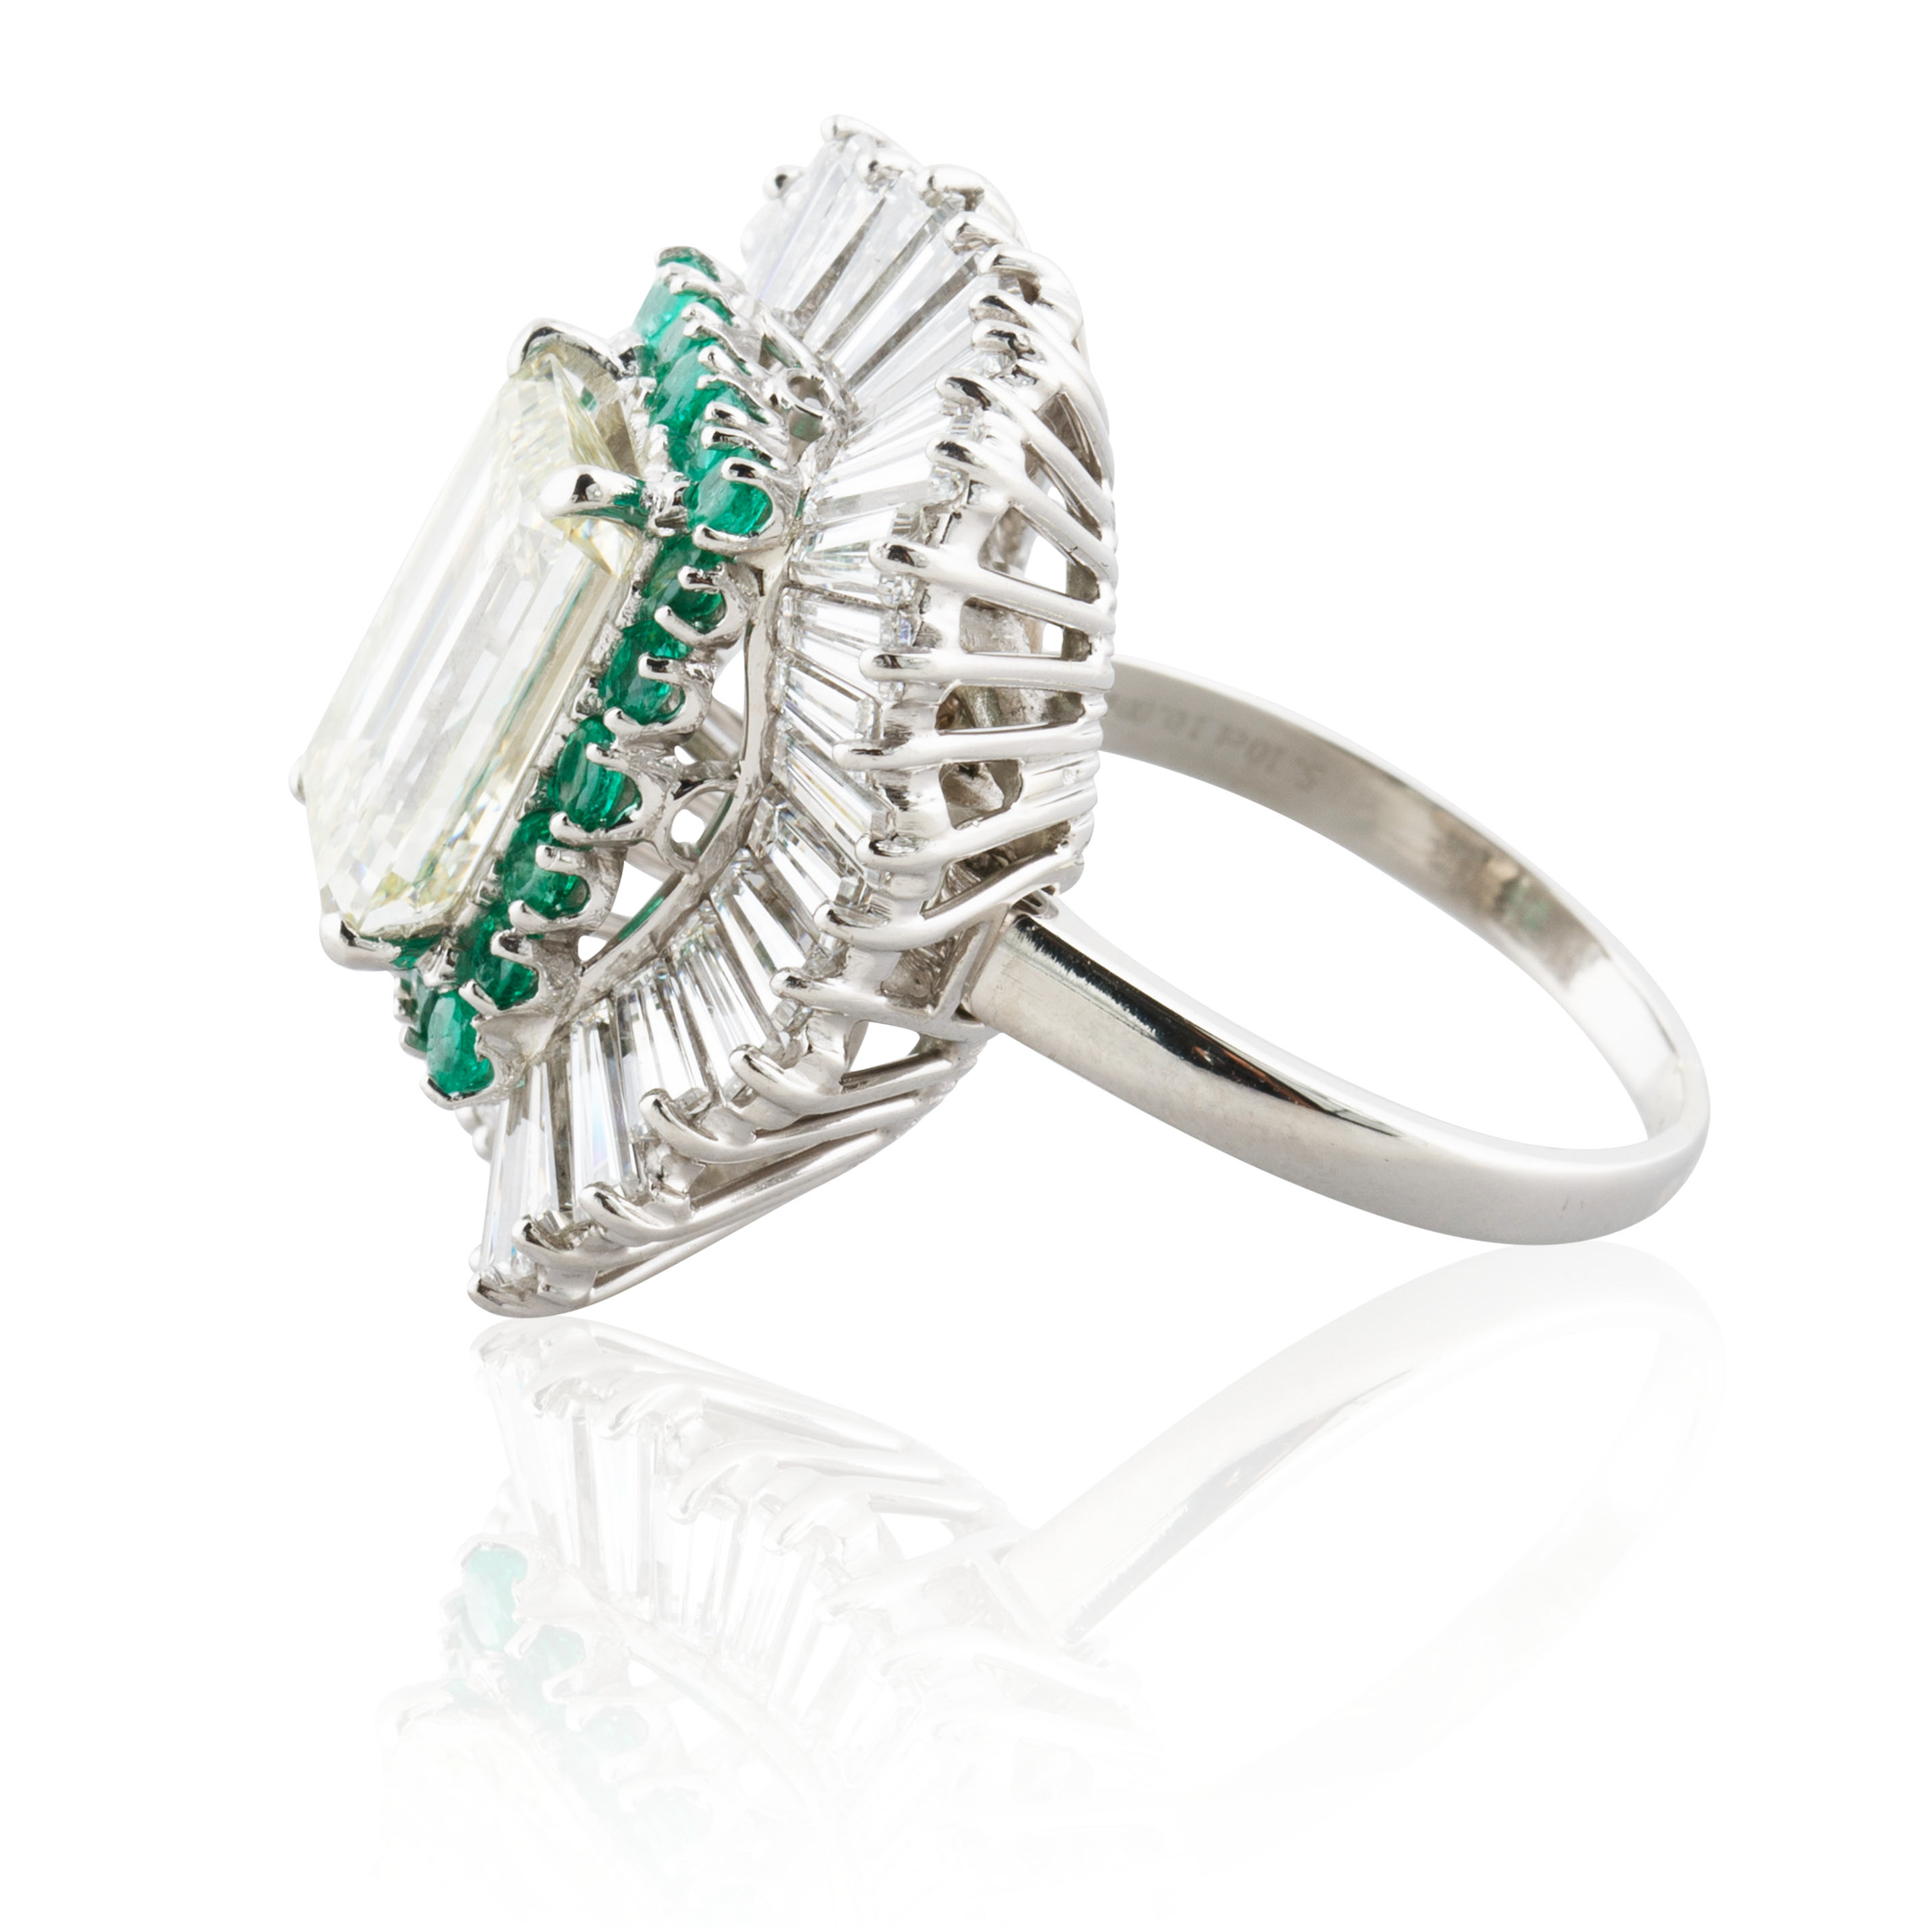 A 5.03 KT EMERALD CUT DIAMOND RING IN A BALLERINA SETTING - Image 2 of 7